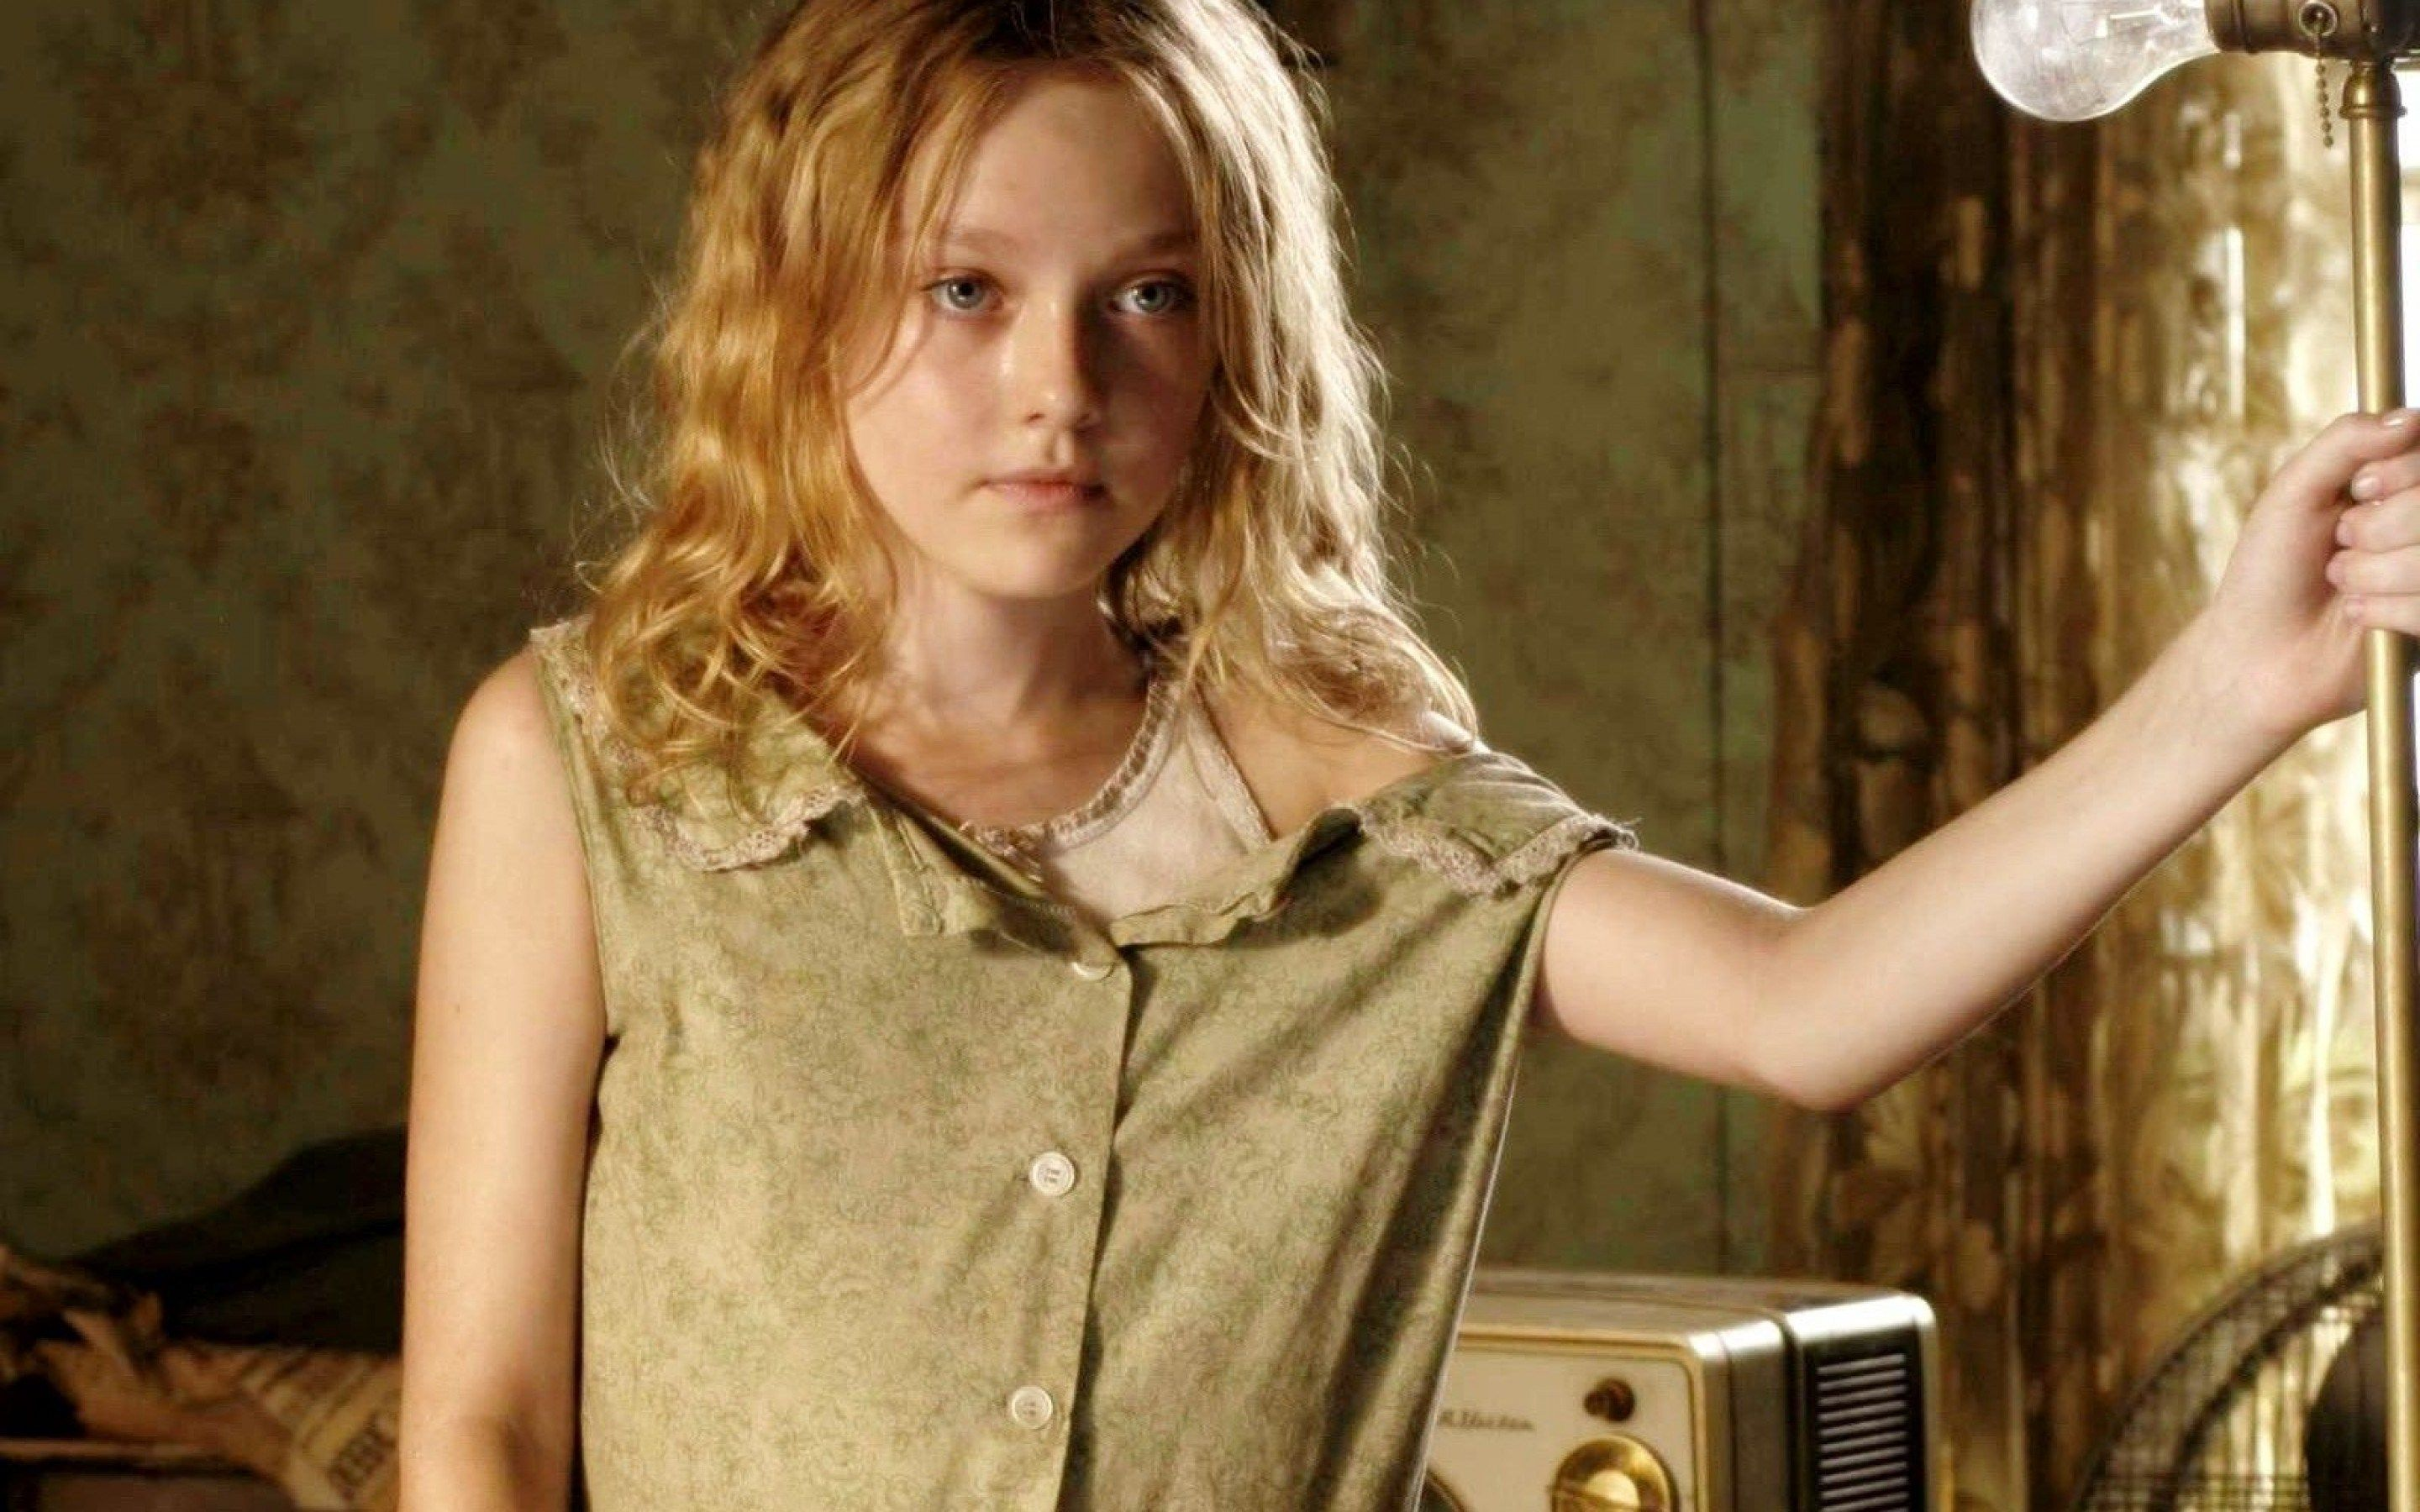 2880x1800 px dakota fanning picture for mac by Bartley Walls